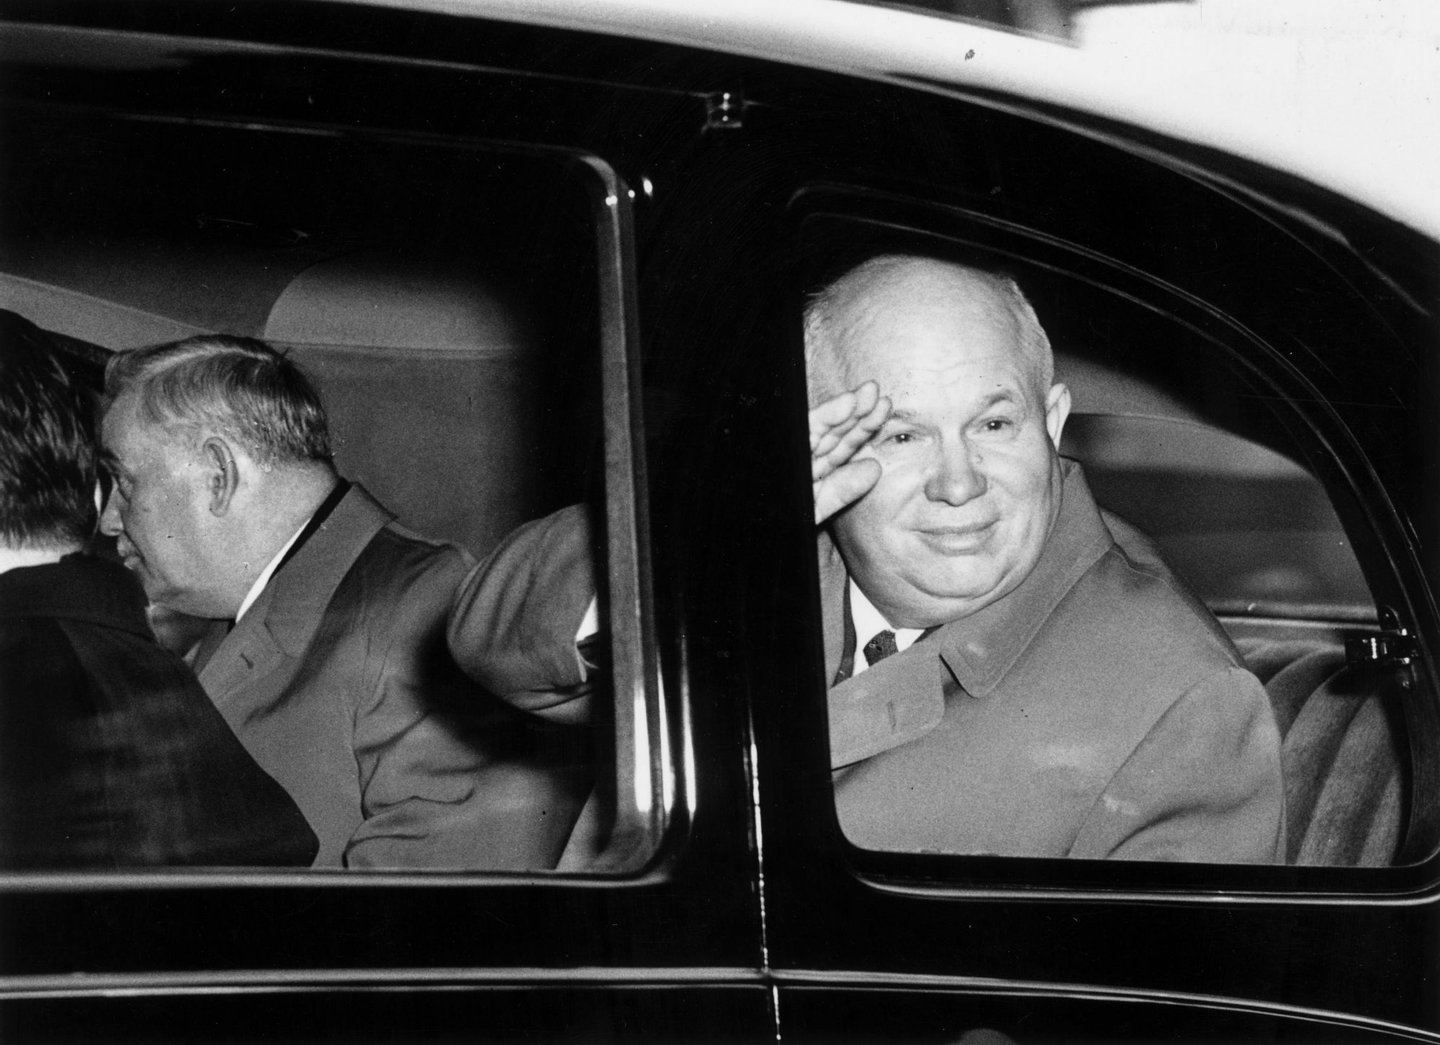 20th April 1956: First secretary of the Soviet Communist party Nikita Sergeyevich Khrushchev (1894 - 1971) greeting onlookers at the Mansion House in London. Travelling with him is Marshal Bulganin (1895 - 1975). (Photo by Fred Ramage/Keystone/Getty Images)